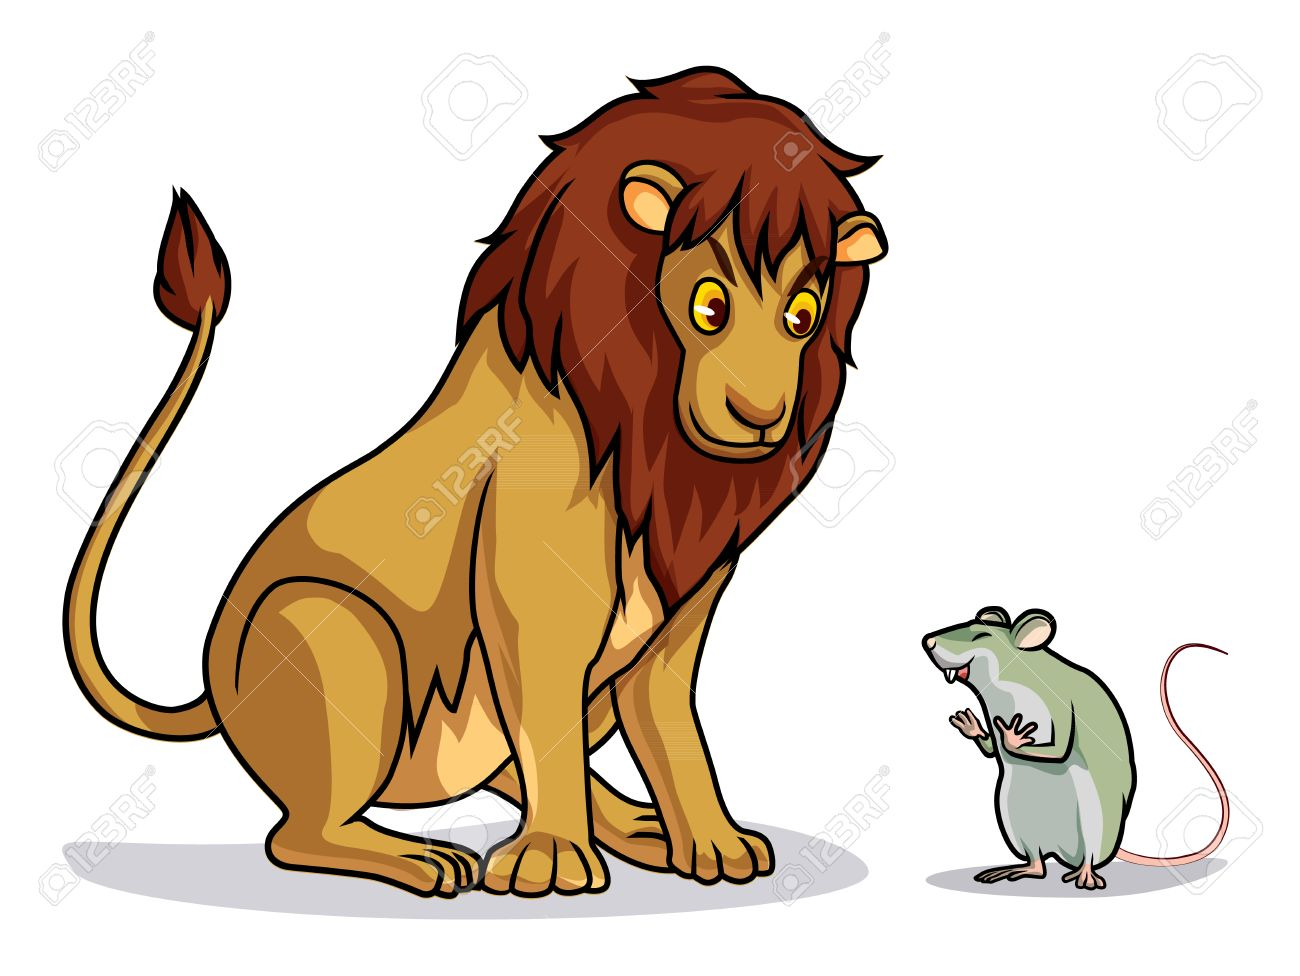 Lion And Rat Draw Cartoon Vector Royalty Free Cliparts Vectors And